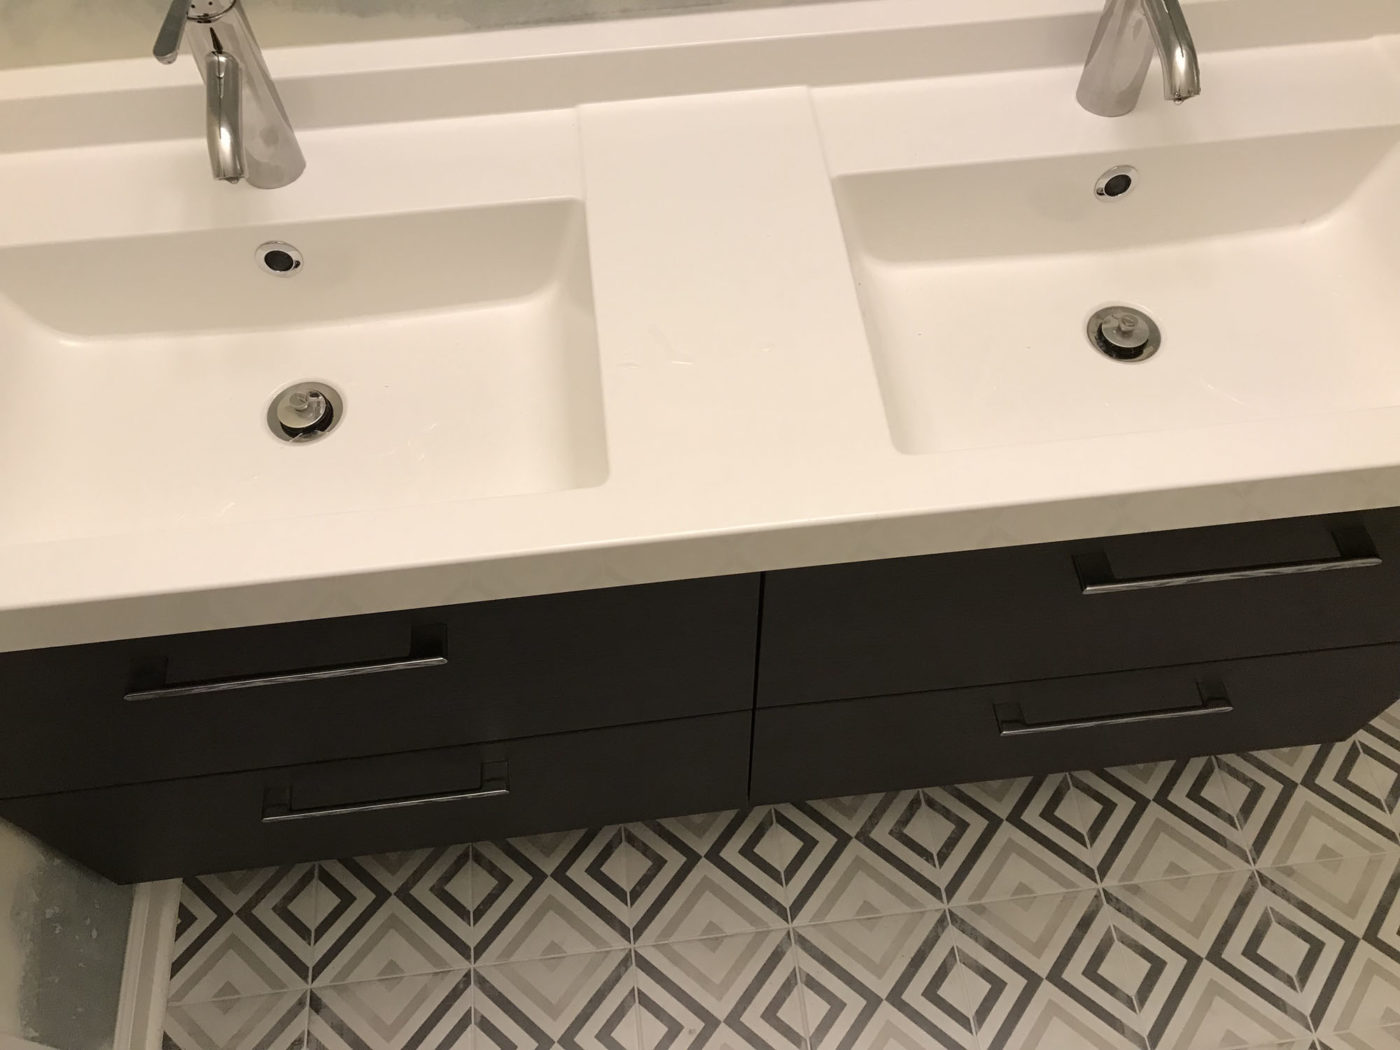 Commercial Property Bathroom remodeling in Streamwood IL - new sink, tile, flooring, cabinets